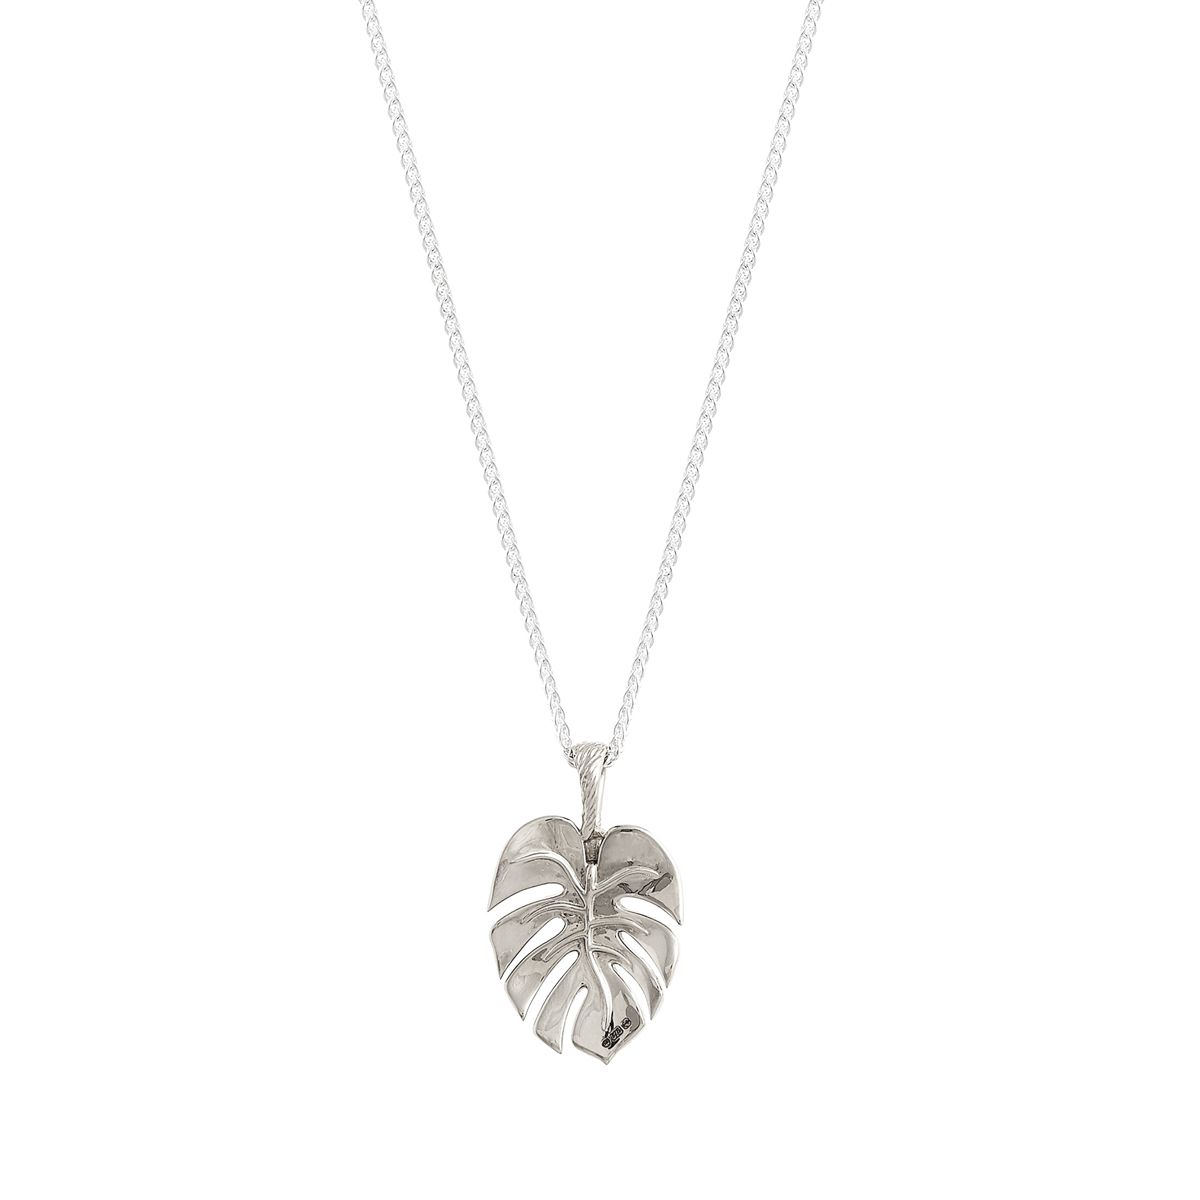 Palm Leaf Silver Necklace | Wire Wrapping Jewelry | Leaf Jewelry Within Most Current Tropical Palm Pendant Necklaces (View 3 of 25)